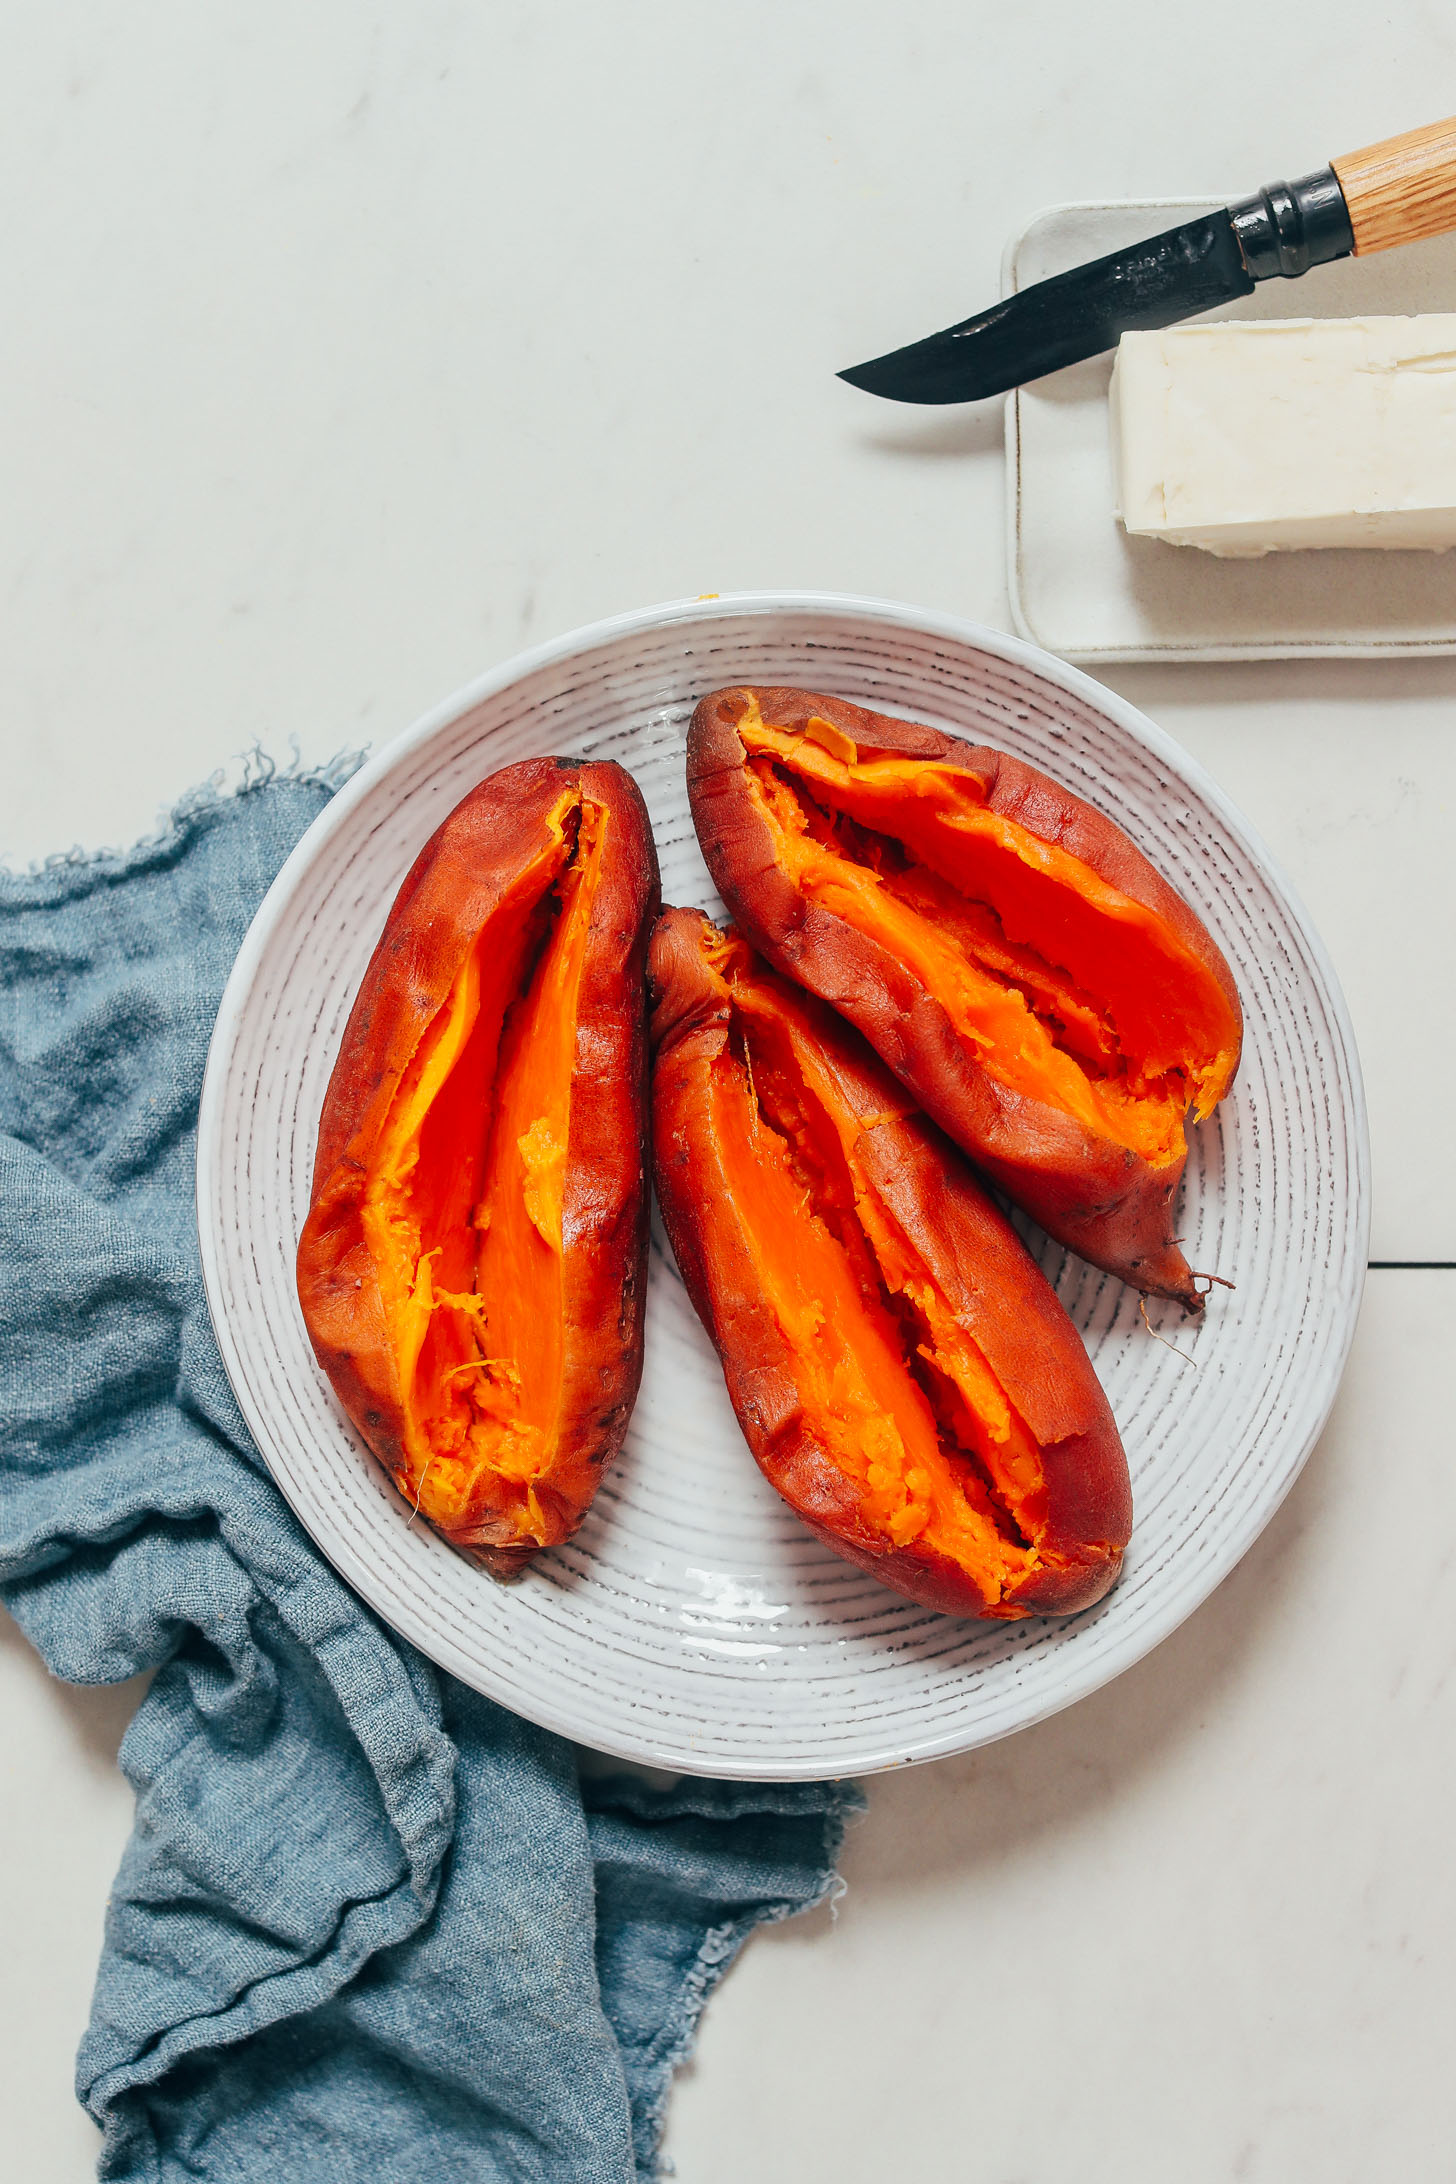 Bowl of cooked sweet potatoes made in the Instant Pot